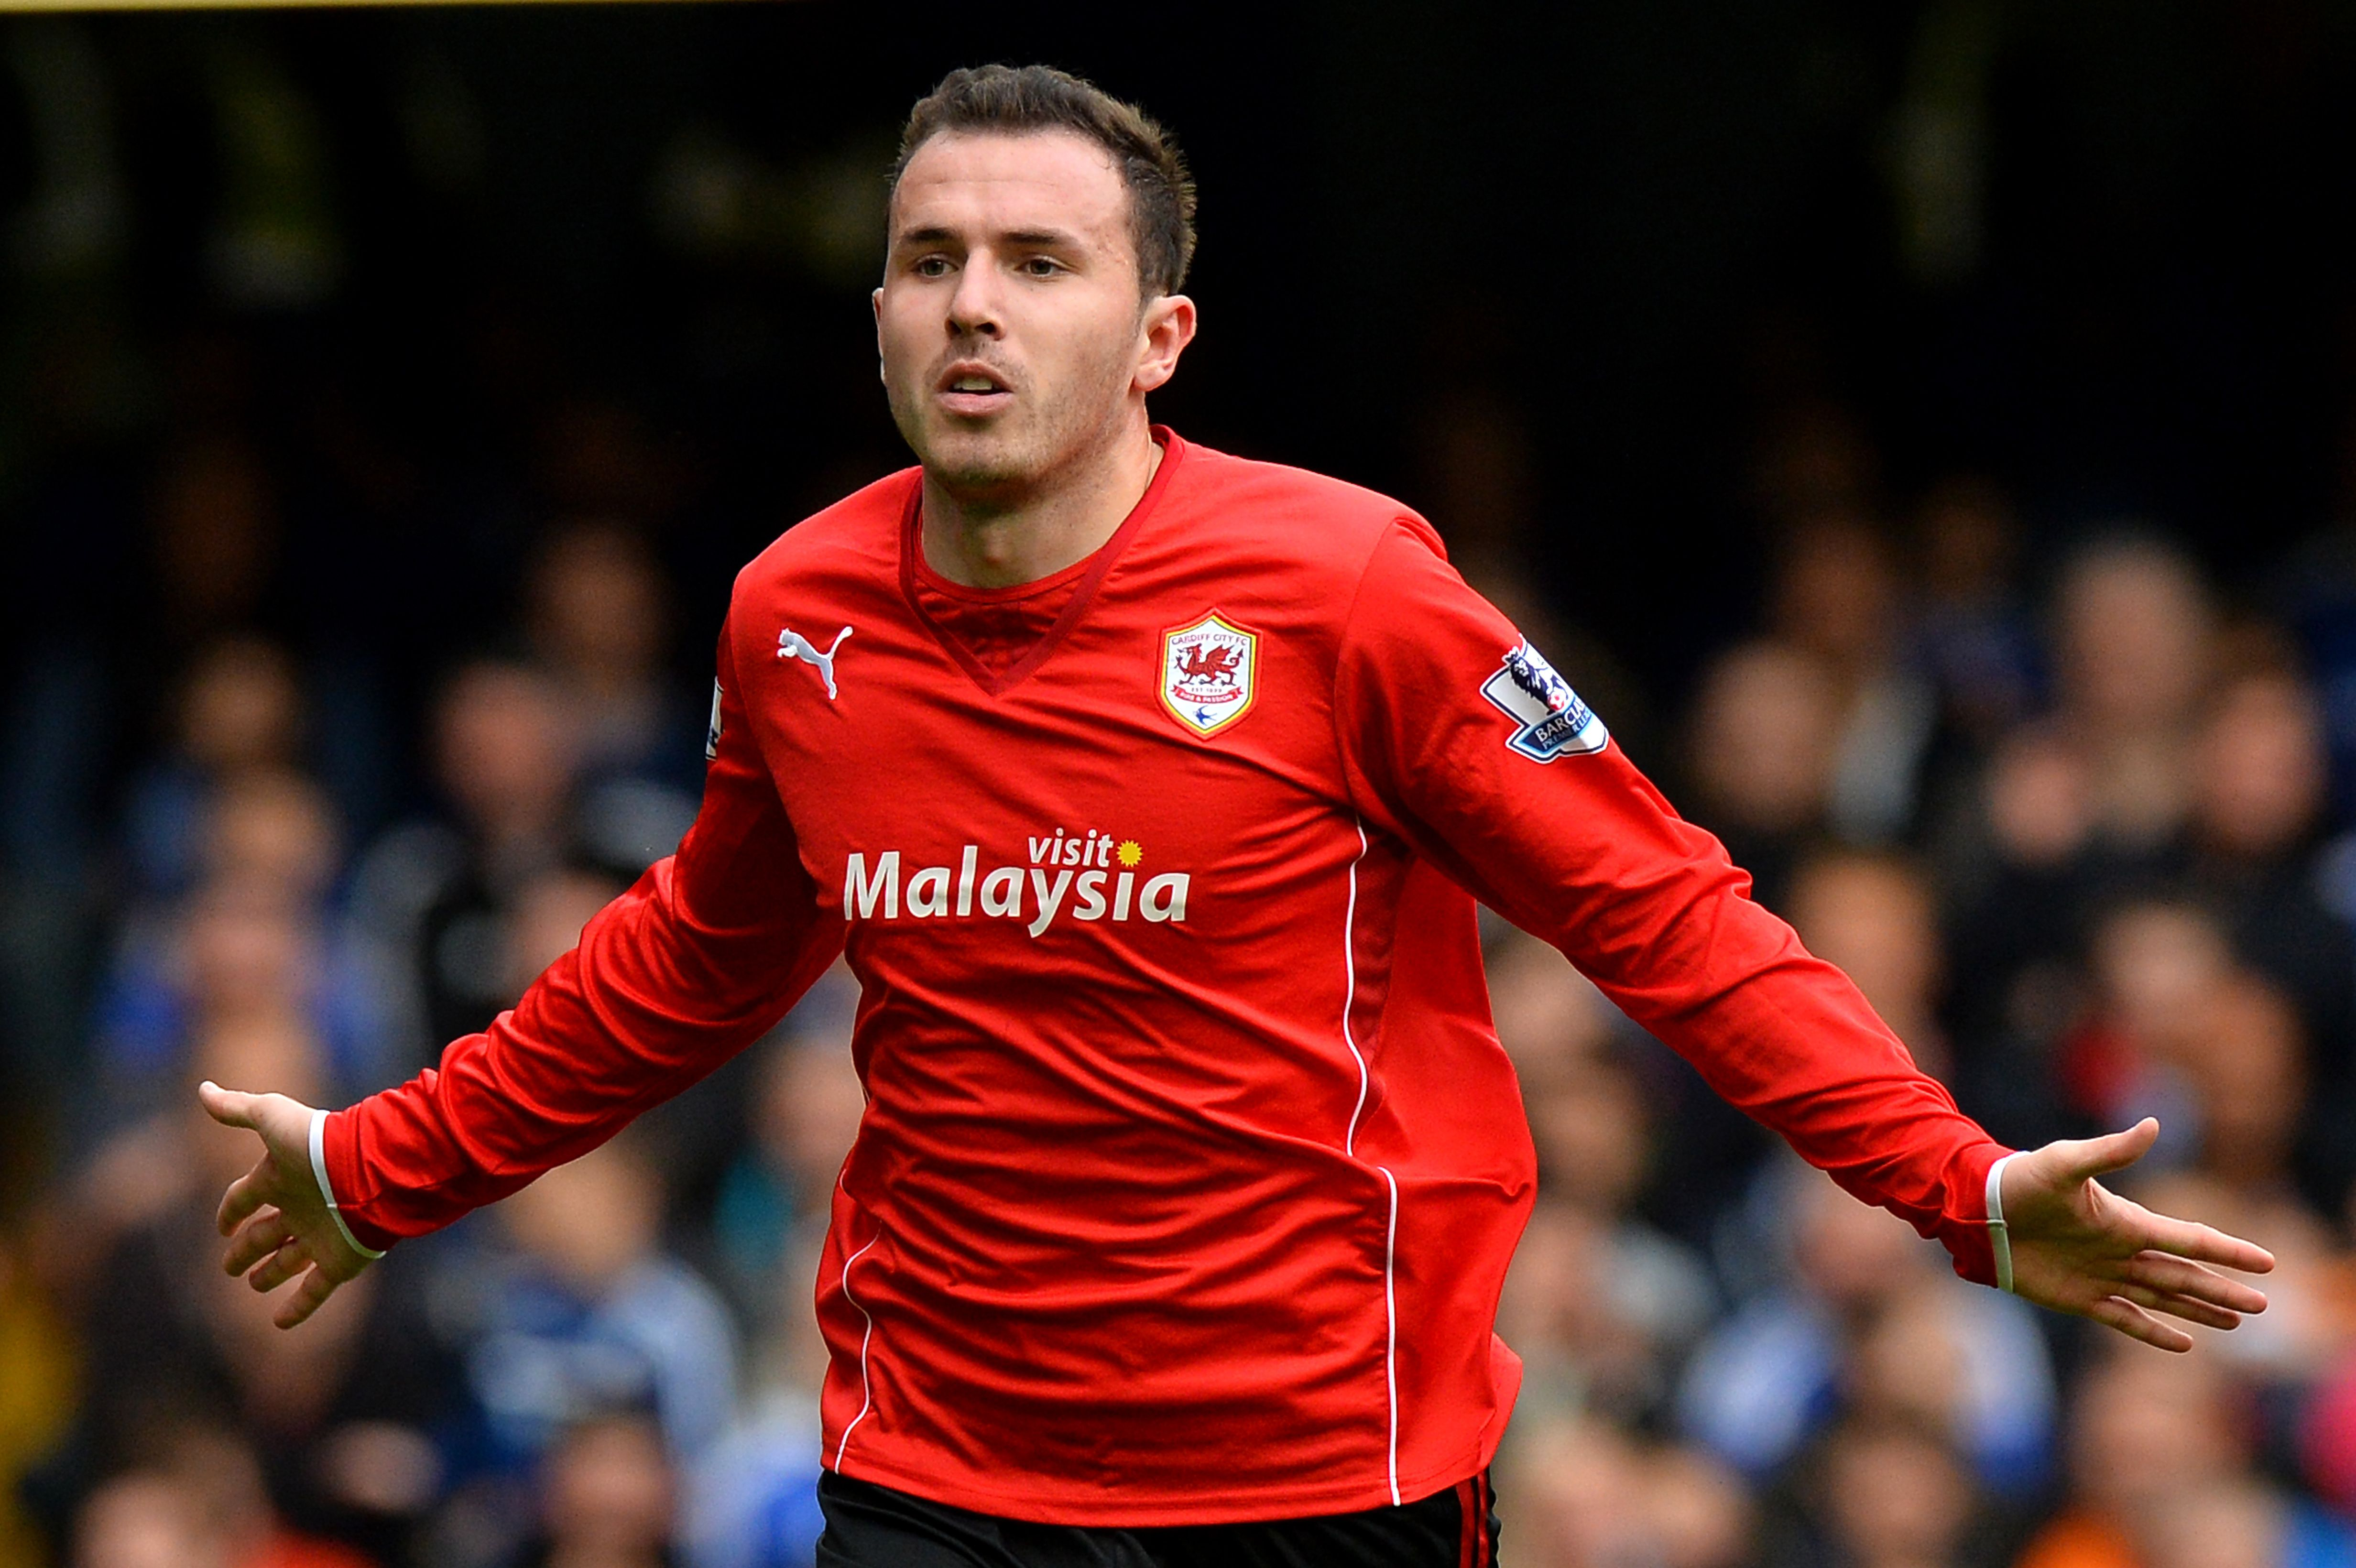 Cardiff City's Jordon Mutch